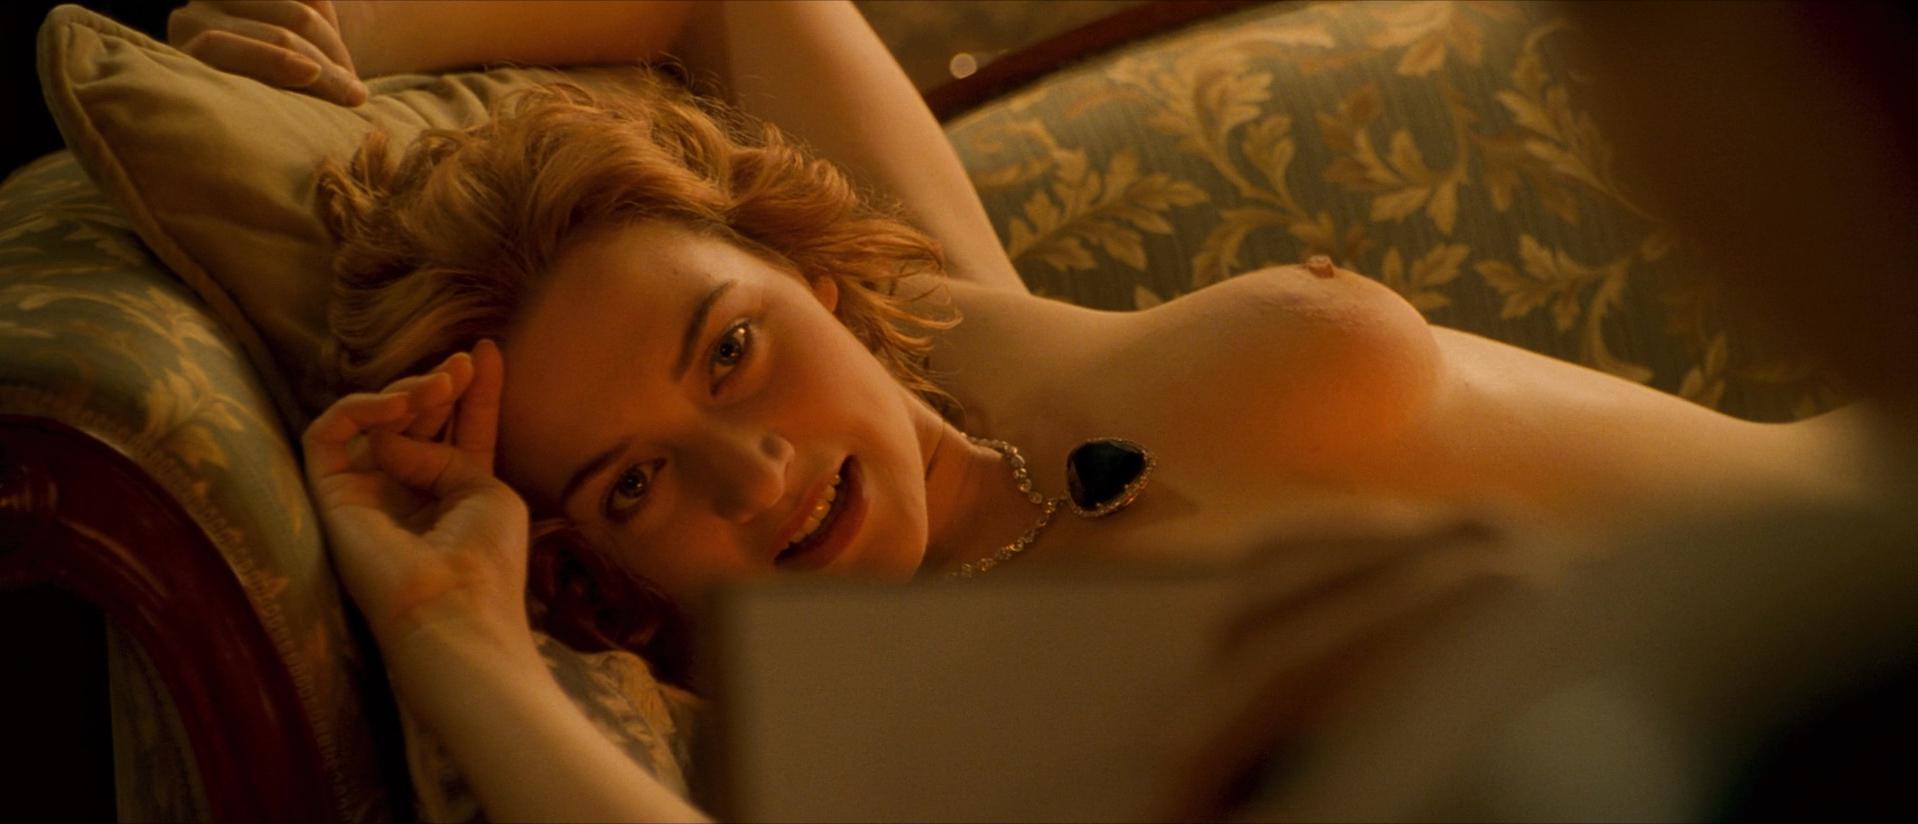 Kate winslet nude photo free pics